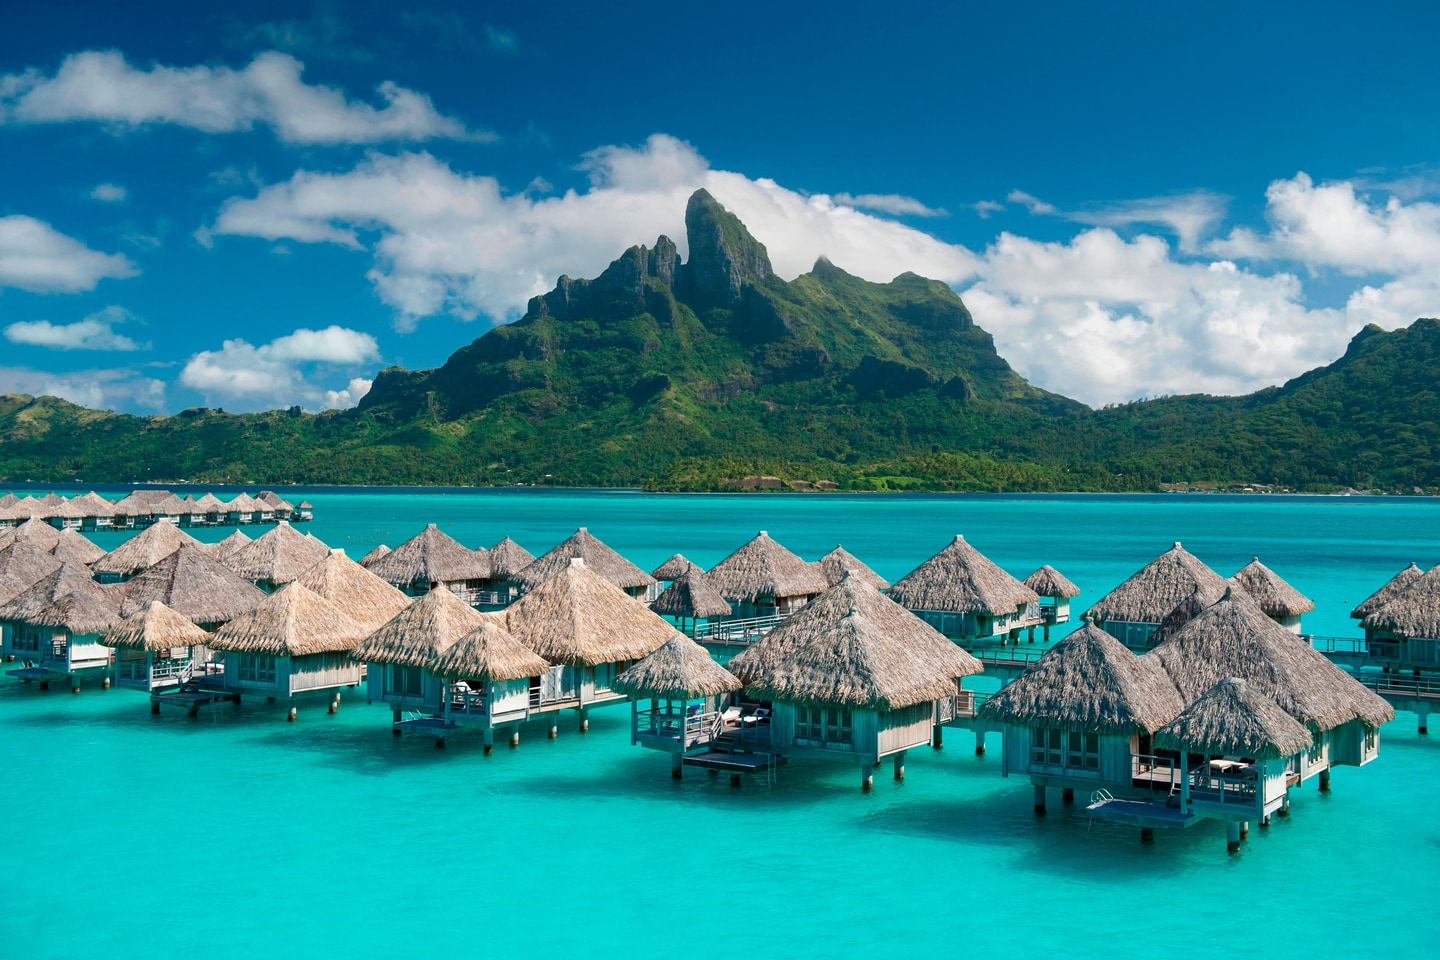 Best Bora Bora Luxury Overwater Bungalow Resorts You Can Book For Free With Points